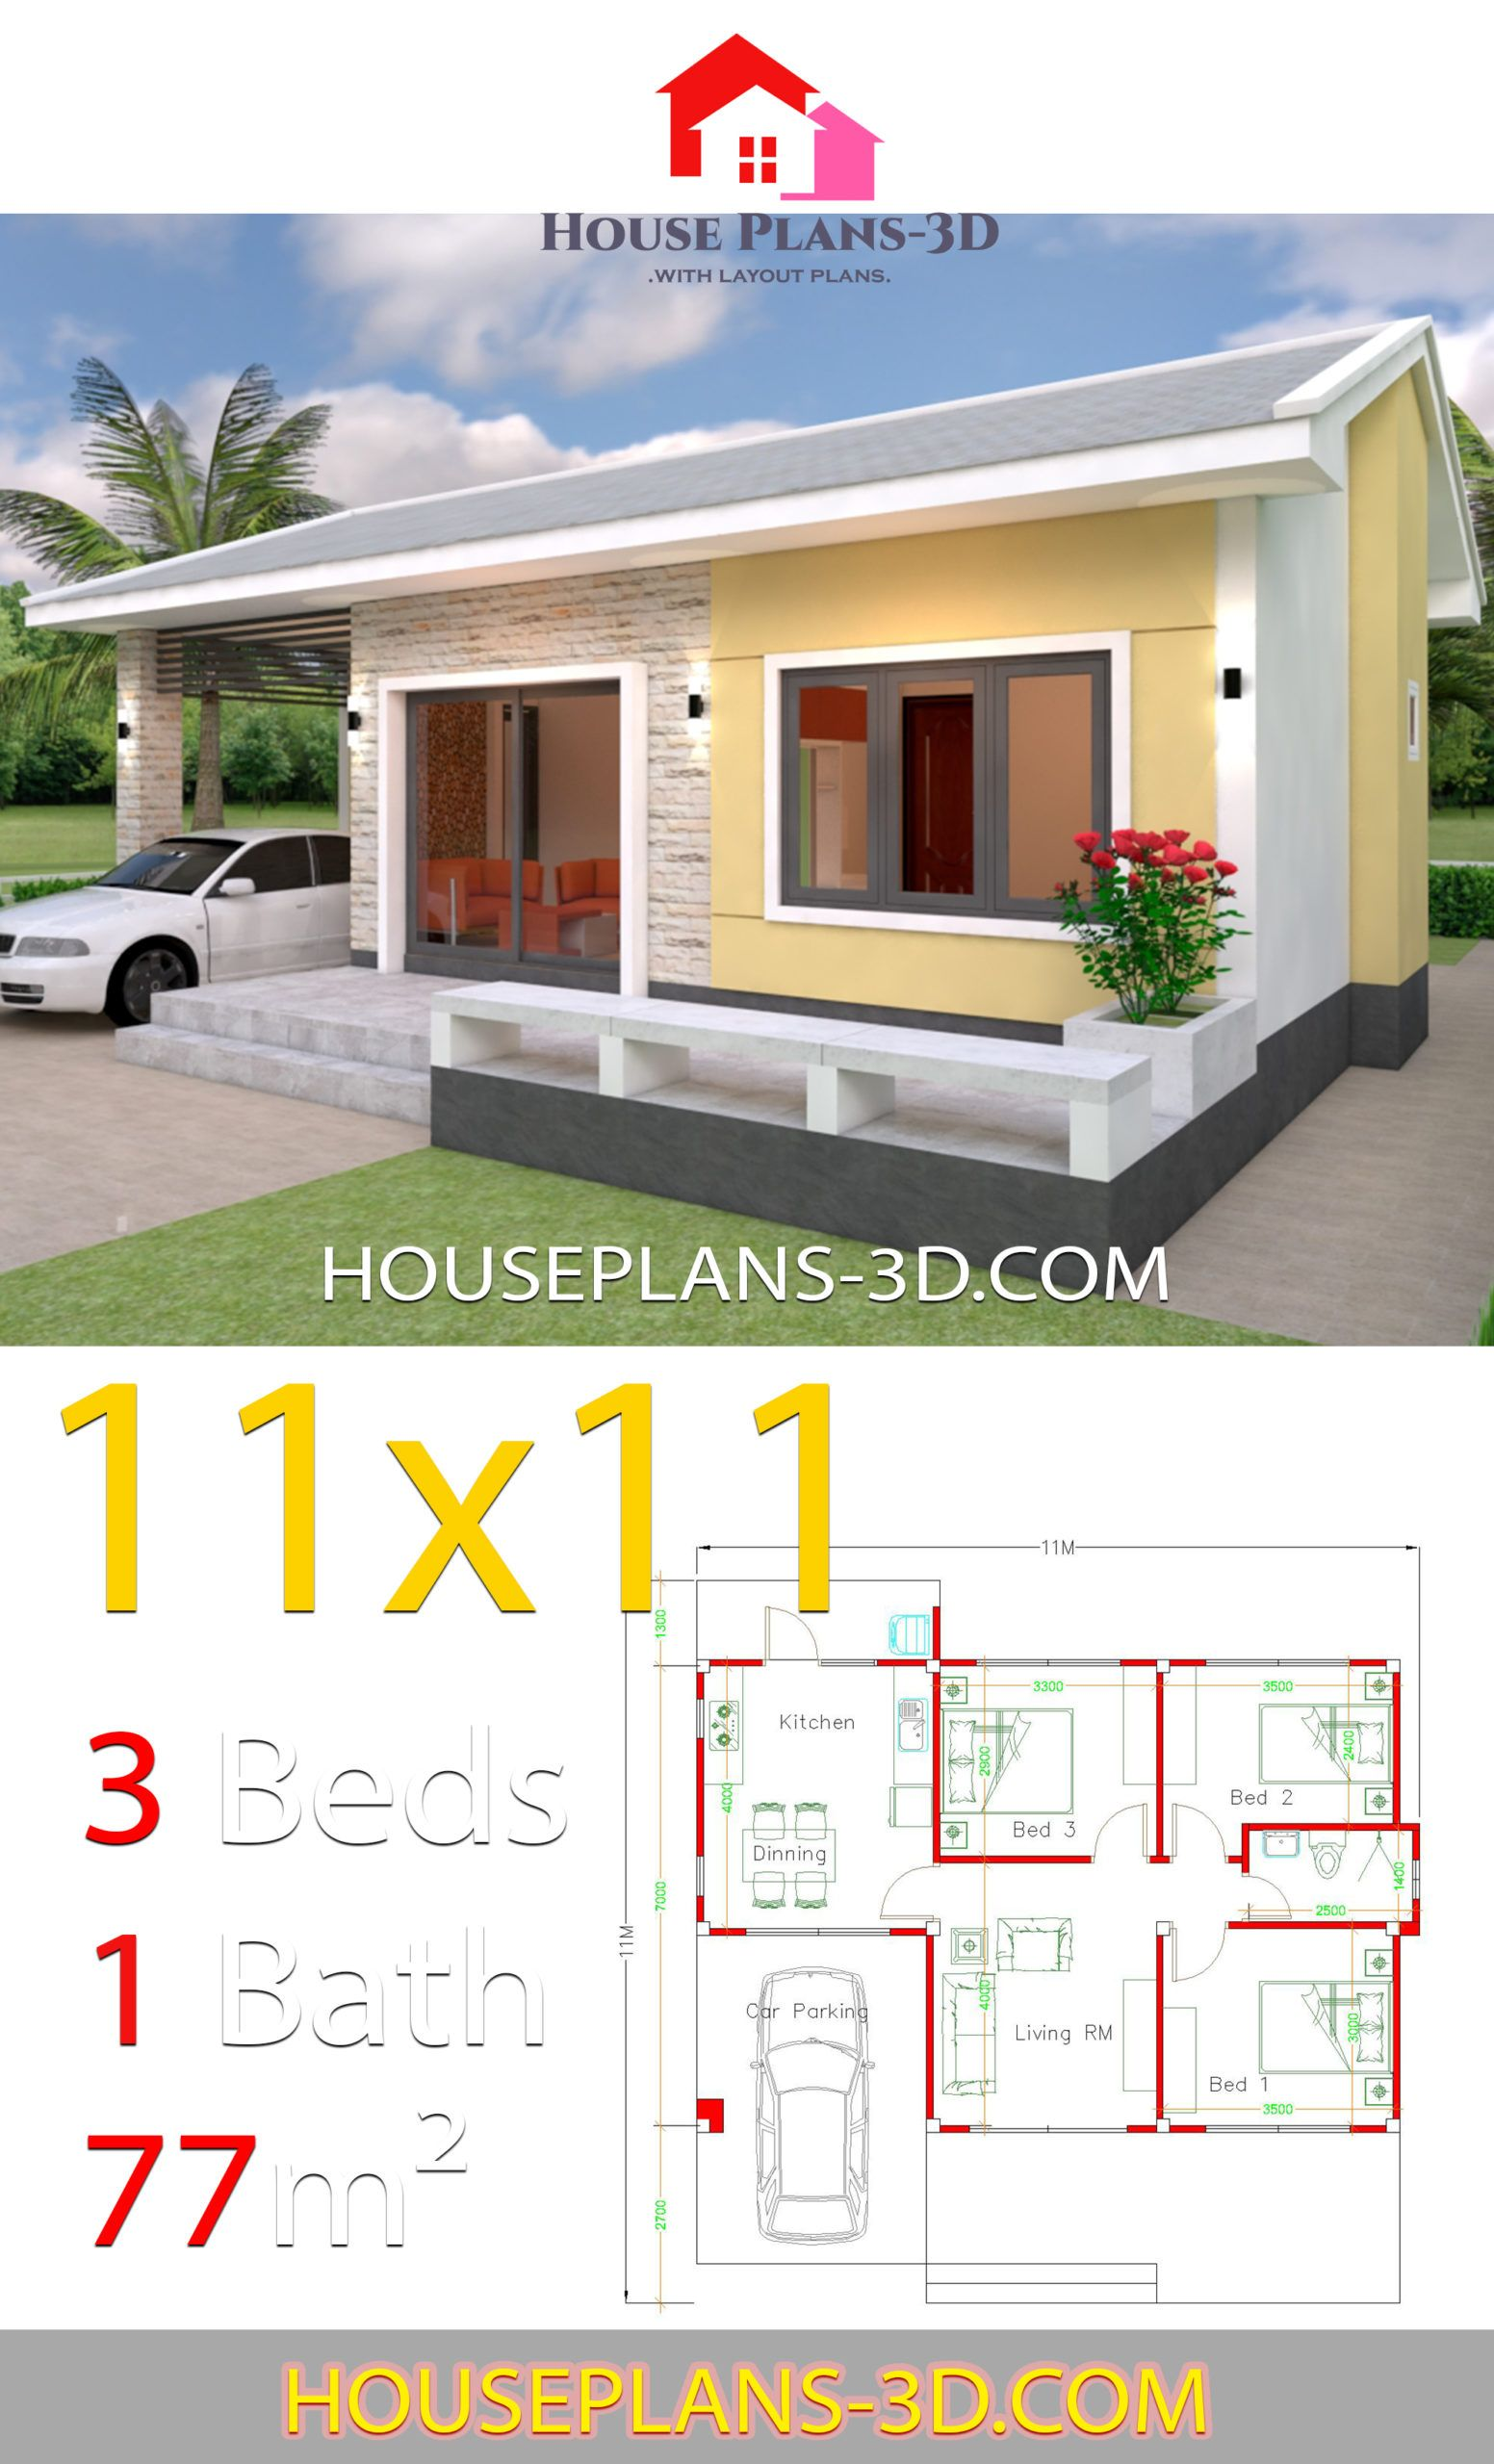 Simple House Design Plans 11x11 With 3 Bedrooms House Plans 3d Simple House Design Simple House House Design Layout Plan